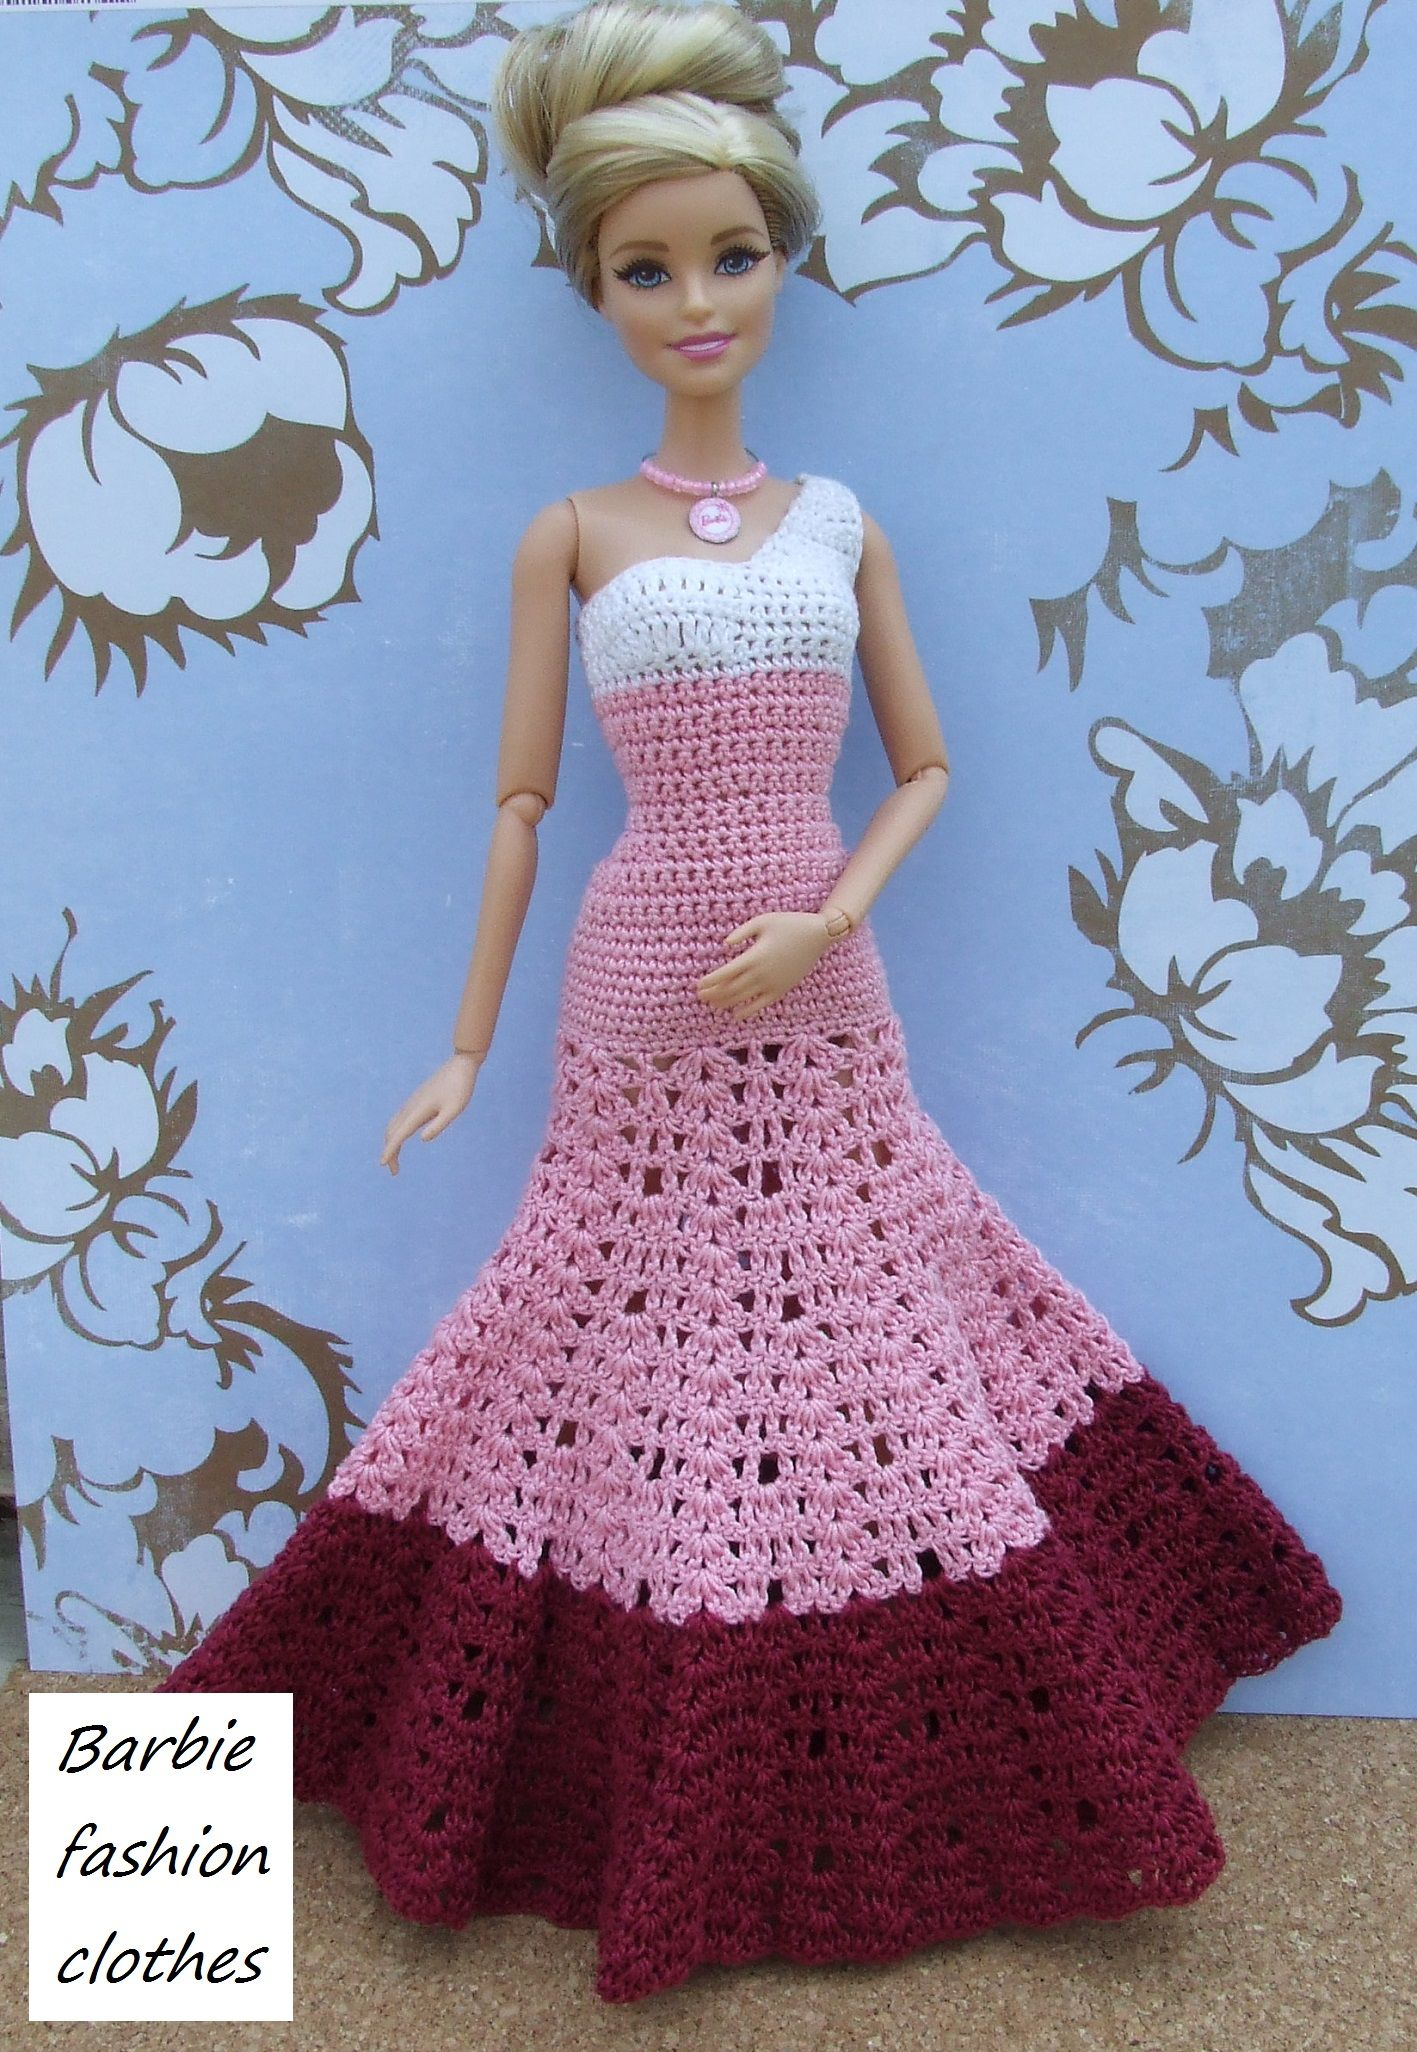 Pin by anel lombard on barbie fashion clothes pinterest barbie barbie clothes barbie dolls girl dolls crochet dolls the hook crochet doll clothes crochet patterns barbie patterns fashion clothes bankloansurffo Image collections